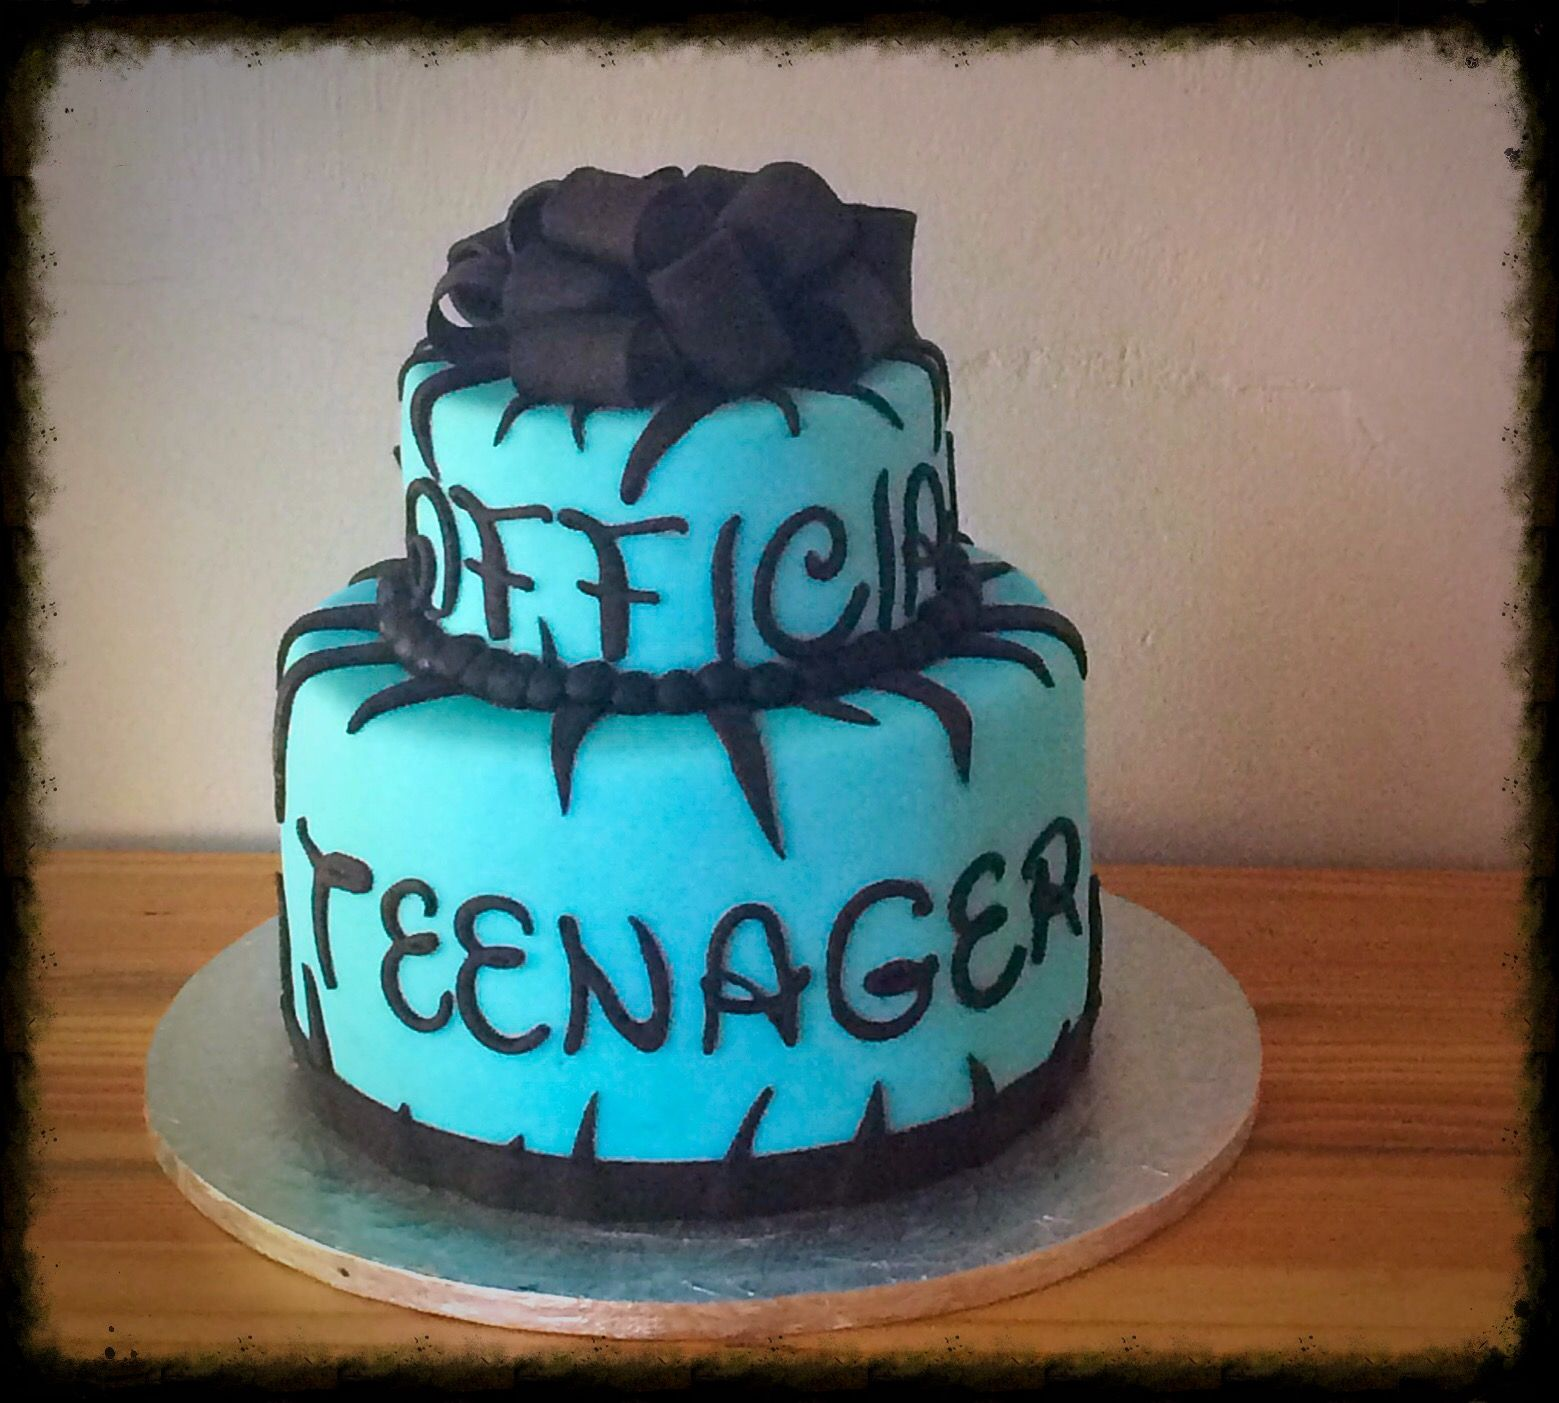 13th Birthday Celebration Cake Official Teenager Chocolate Cake